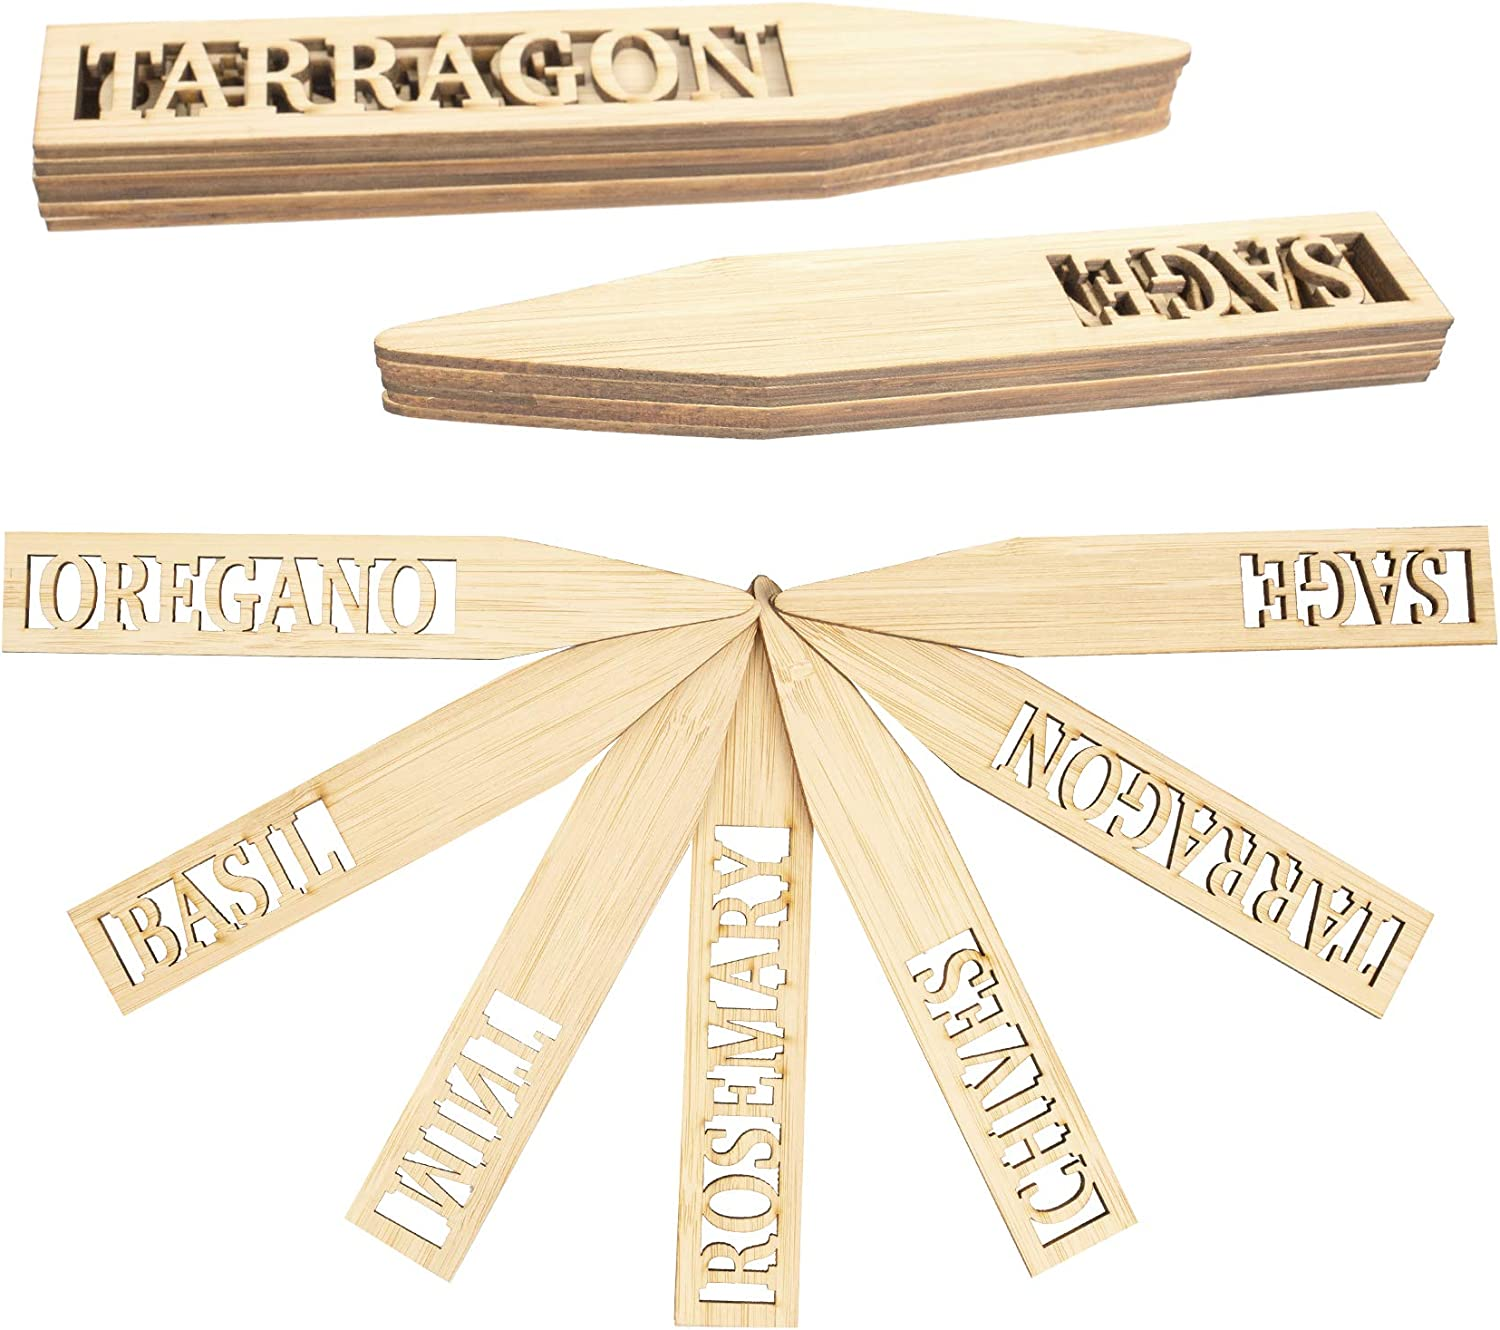 Plant Labels Lettering Garden Markers for Herbs Tags, Hollowed-Out Waterproof Bamboo Wooden Eco-Friendly Sign Sticks for Potted Plants, Herbs, Flowers, Vegetable - 12 Pcs